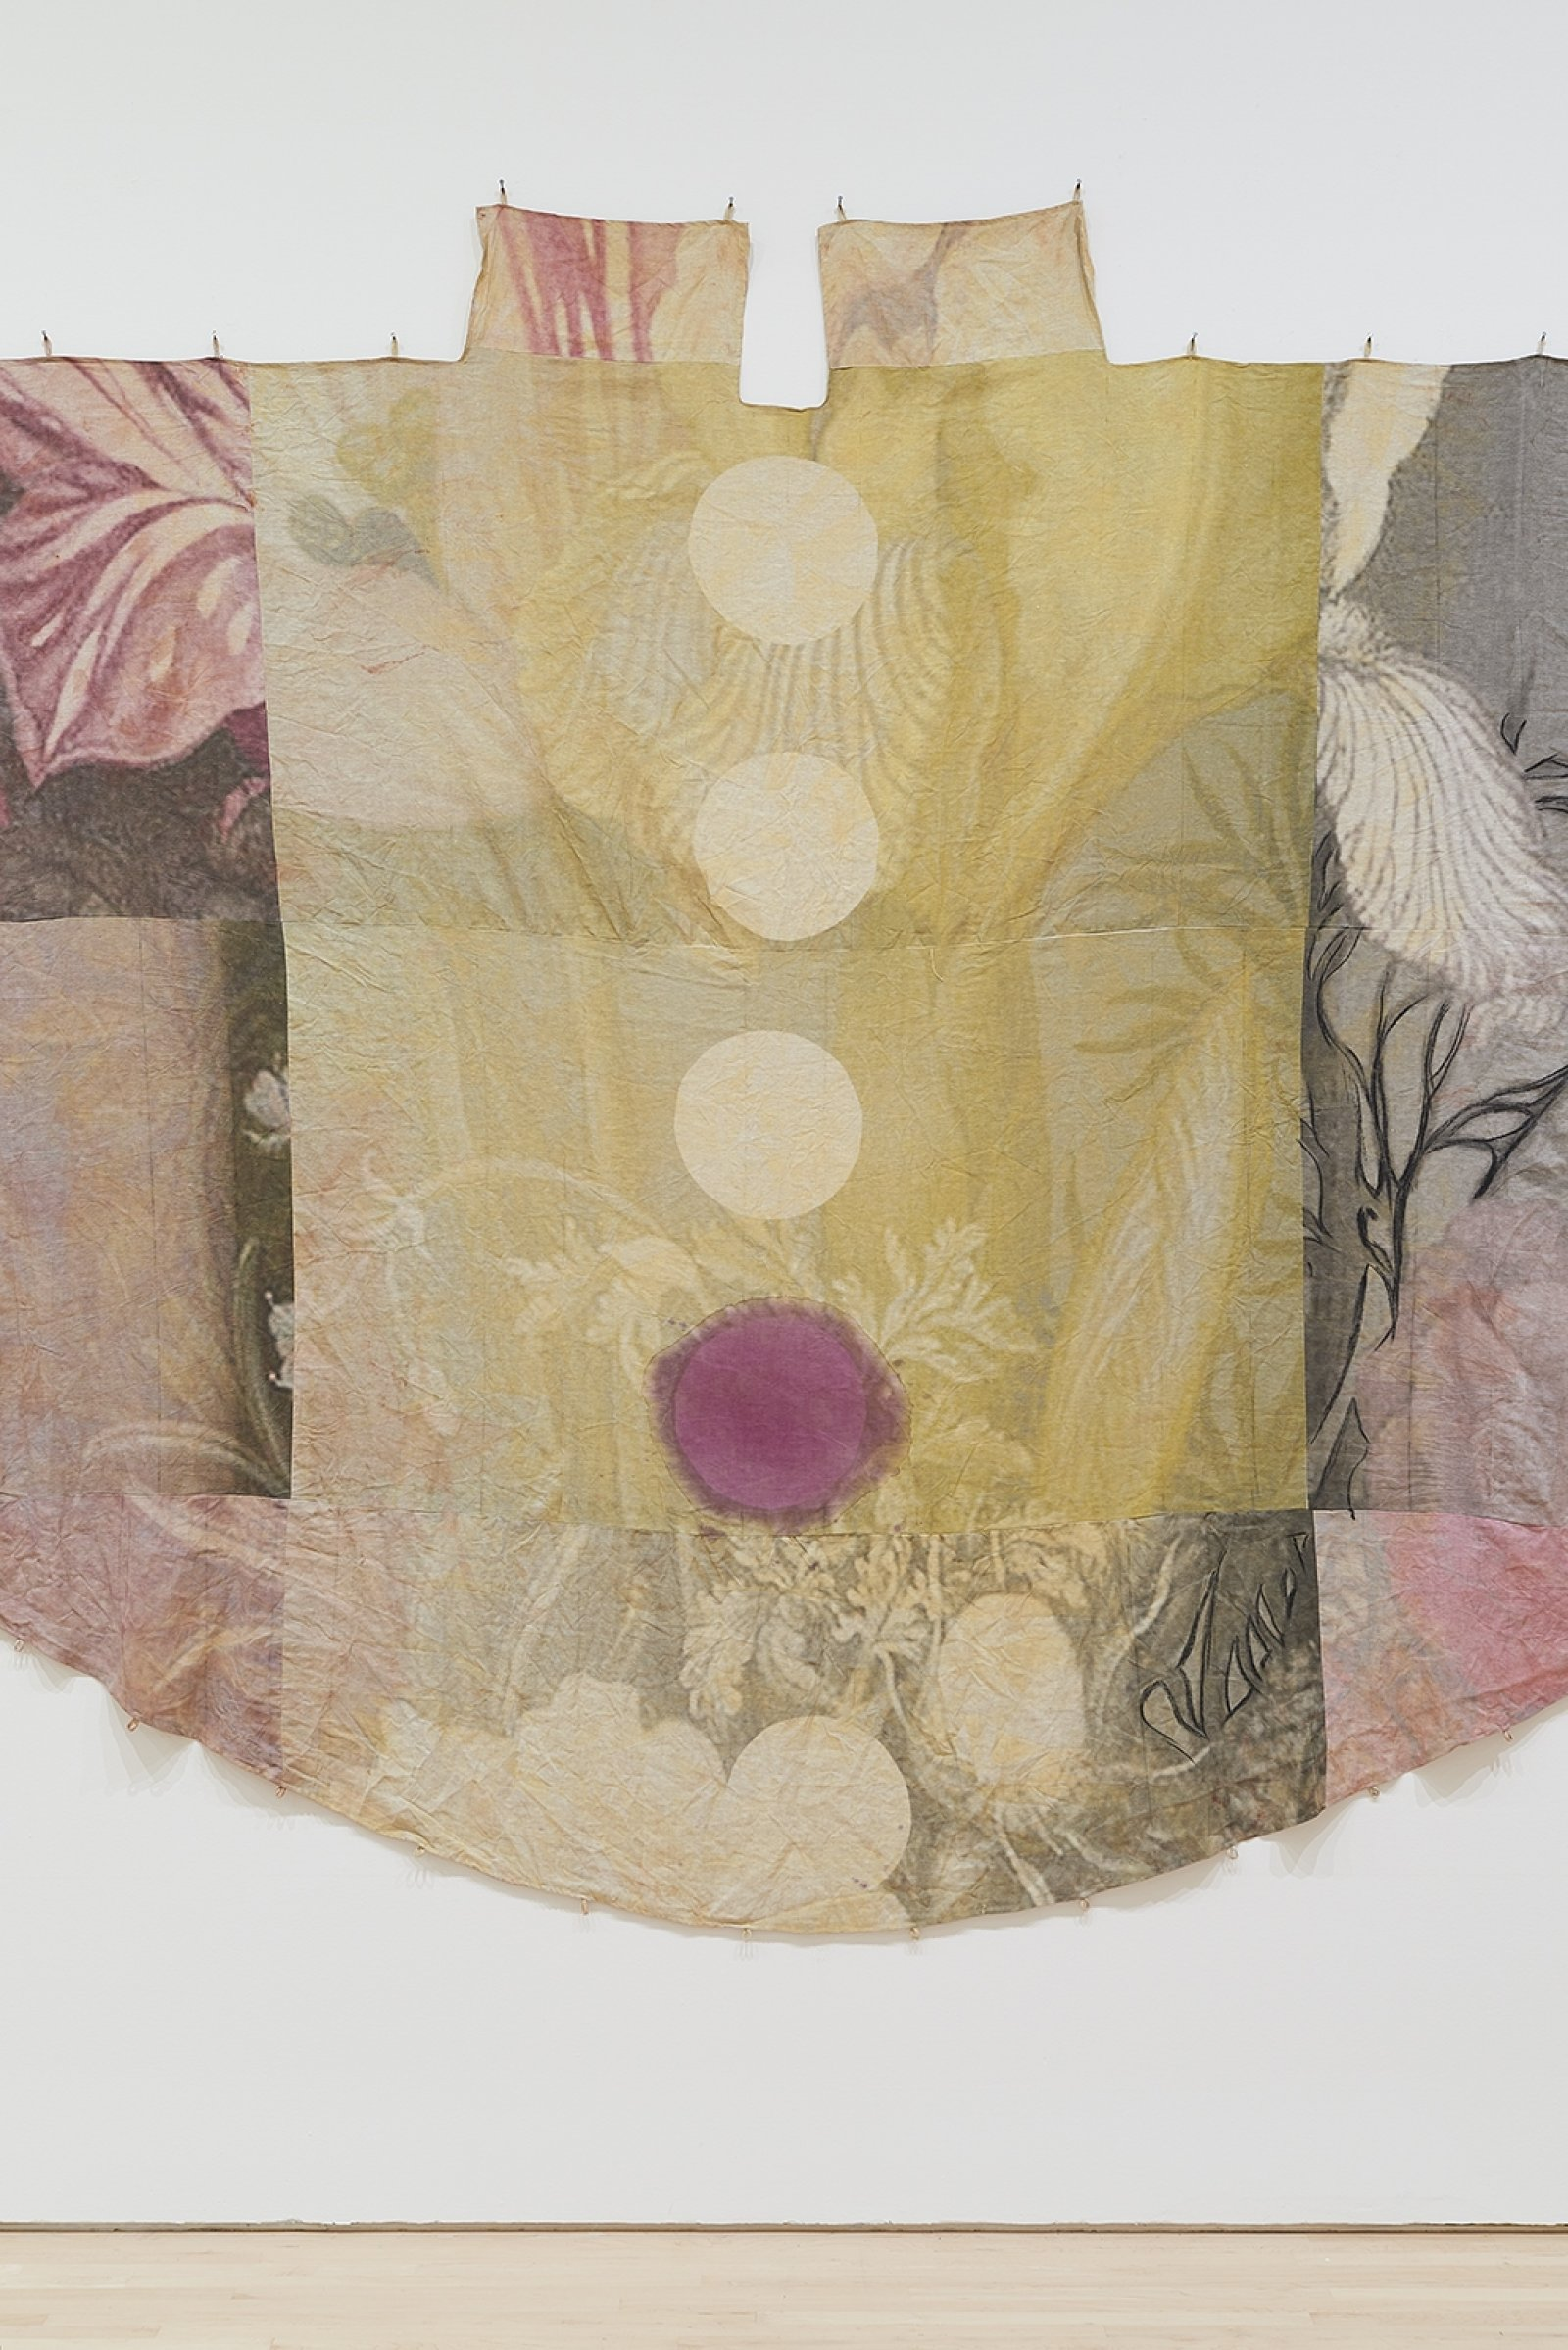 Duane Linklater, can the circle be unbroken 2 (detail), 2019, digital print on linen, iron red dye, cypress yellow ochre, blueberry extract, charcoal, 120 x 240 in. (305 x 610 cm). Installation view, SOFT POWER, SF MOMA, San Francisco, USA, 2019 by Duane Linklater